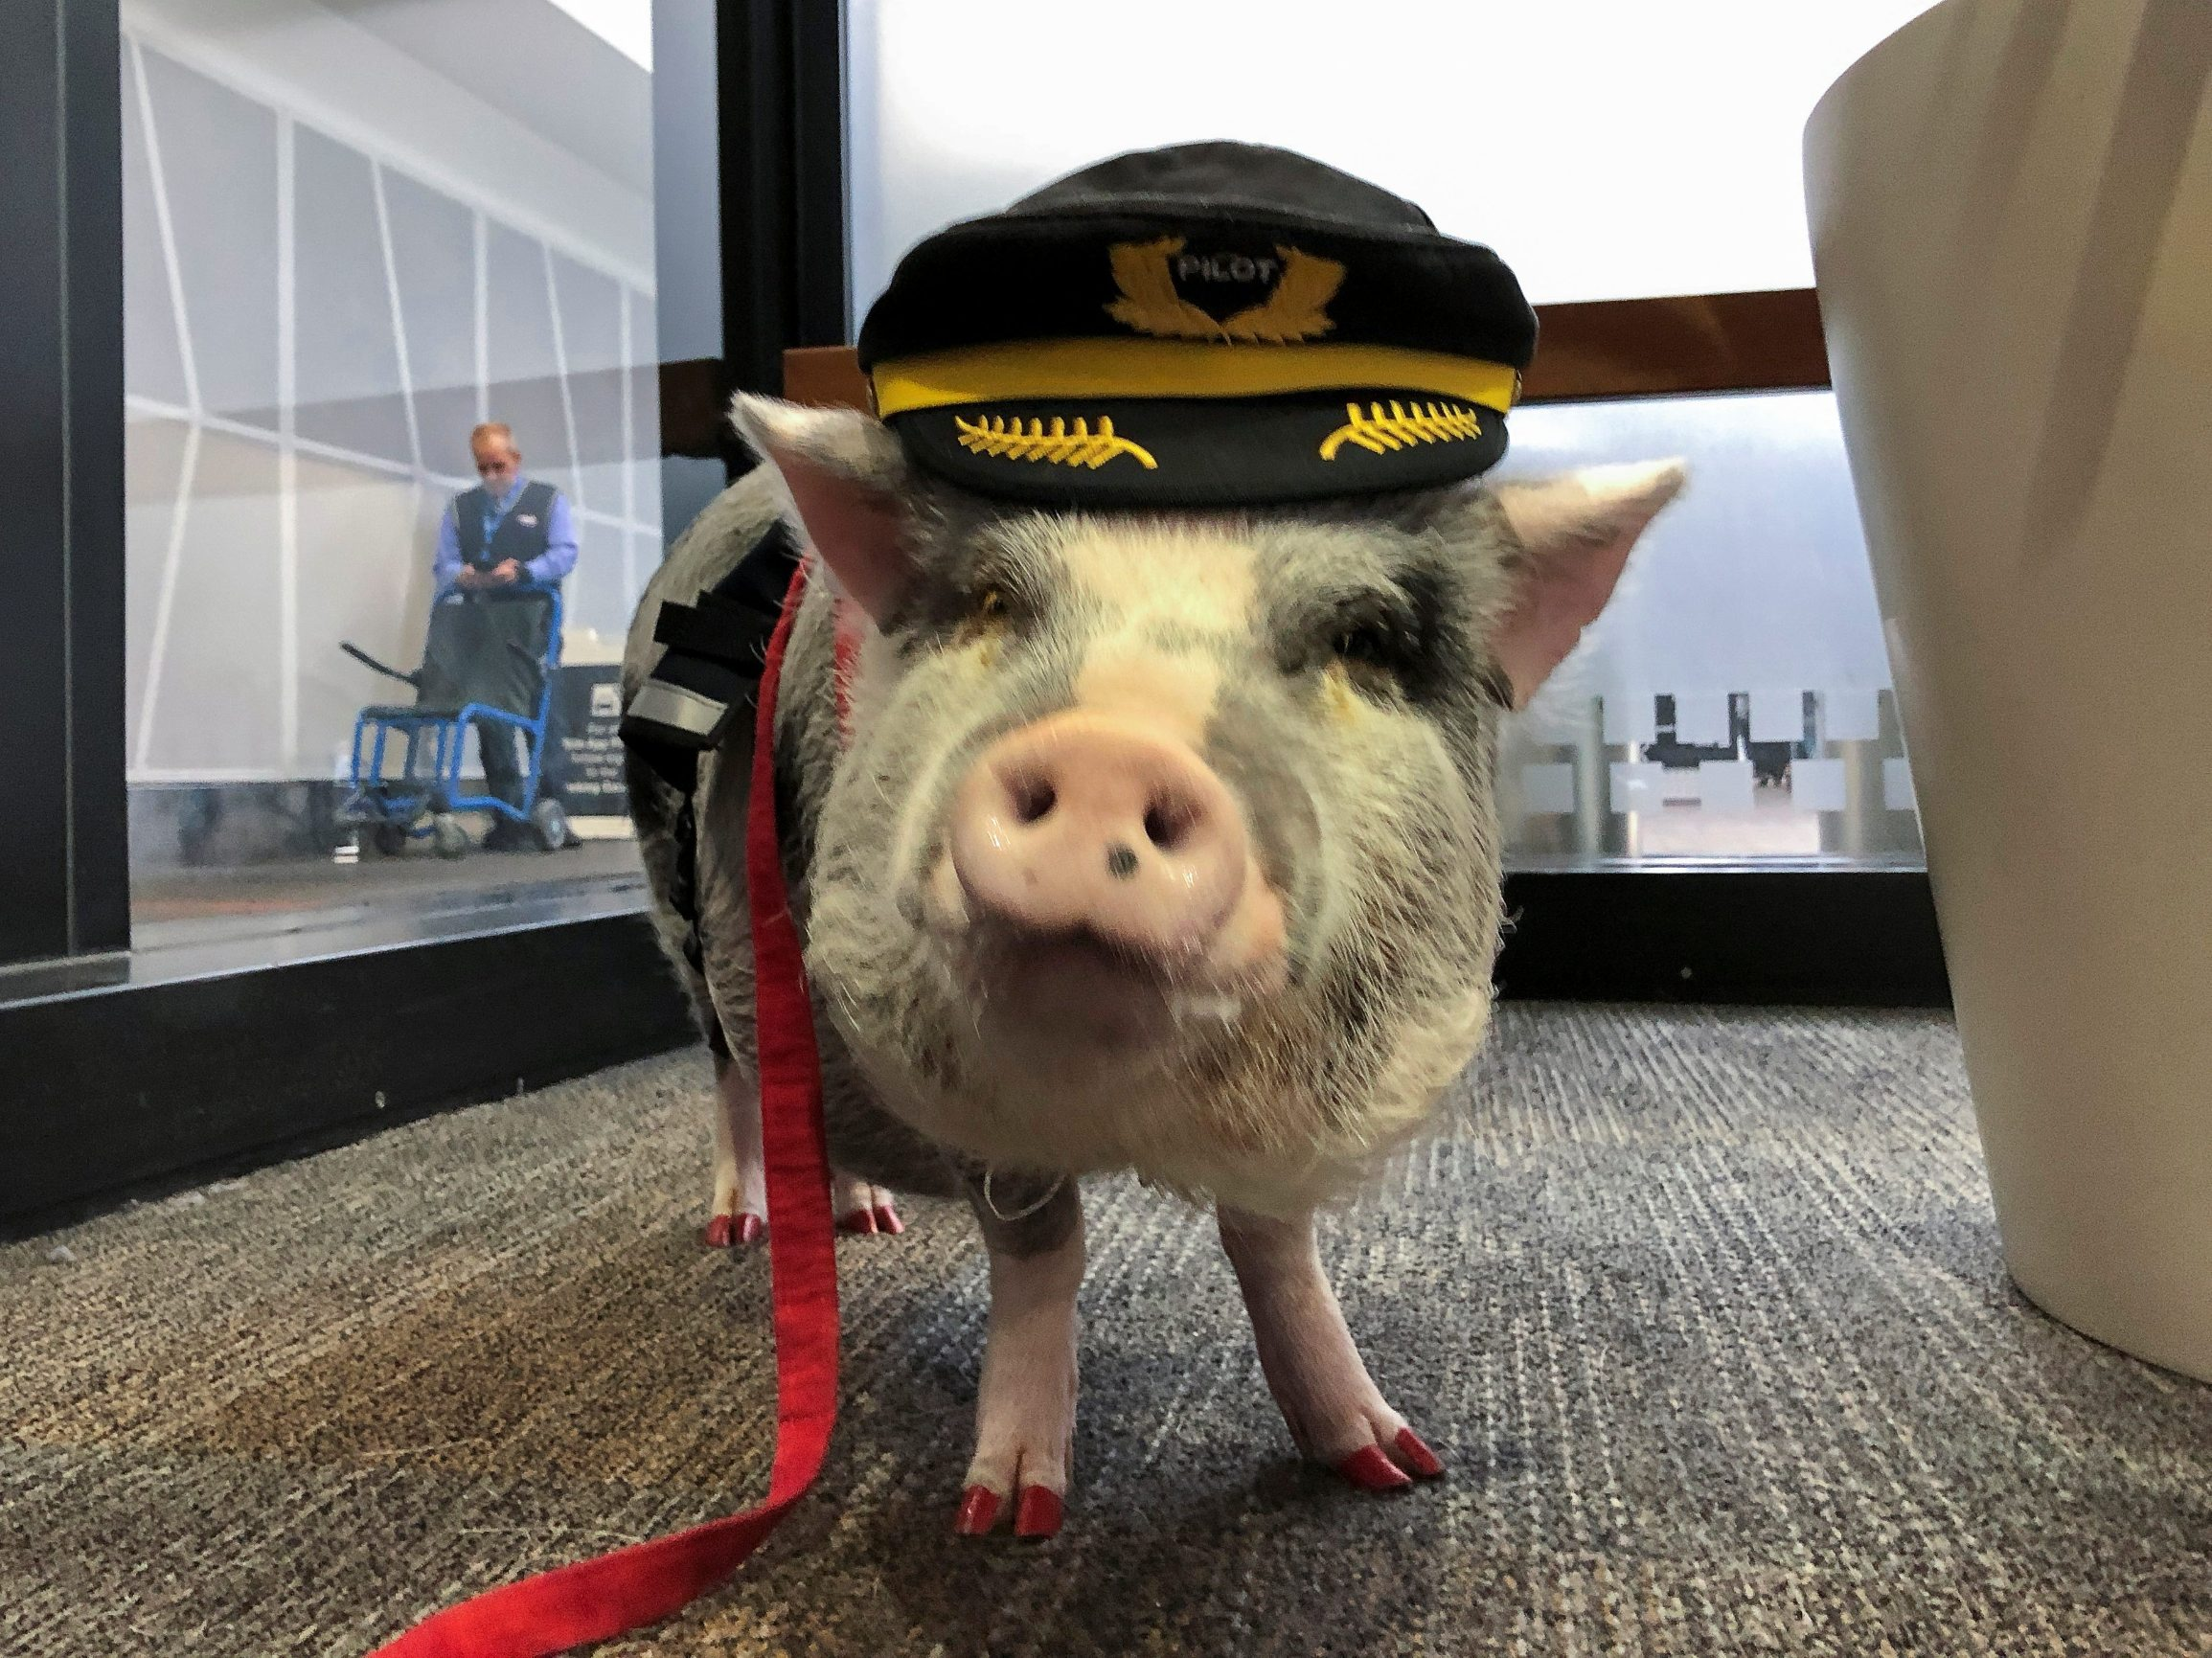 LiLou the therapy pig stands in the departure area at San Francisco International Airport in San Francisco, California, U.S., October 4, 2019. Picture taken October 4, 2019. REUTERS/Jane Ross